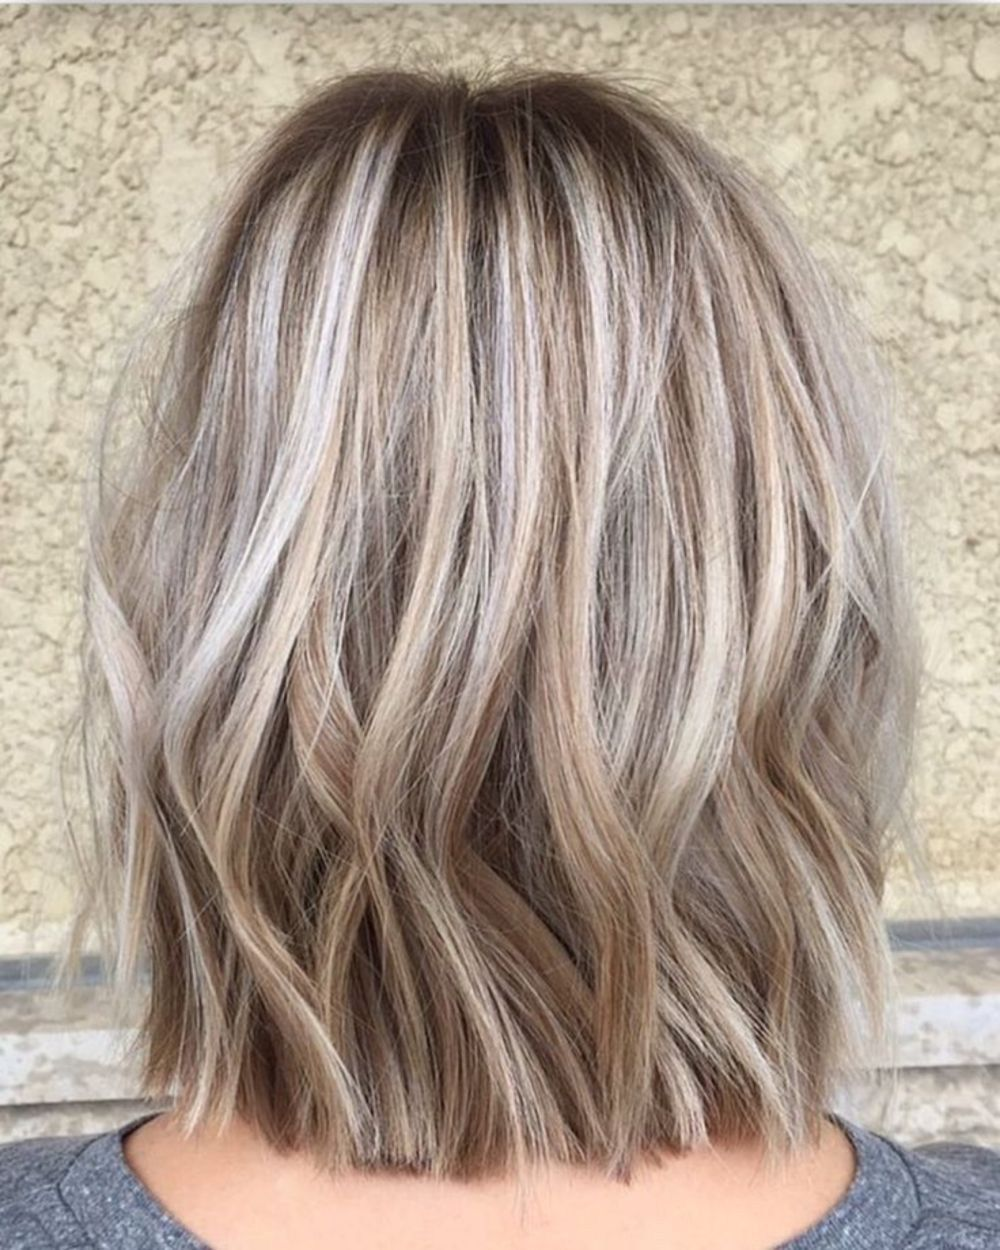 Pretty blonde hair color ideas (43) - Fashionetter | Hair   Makeup ...